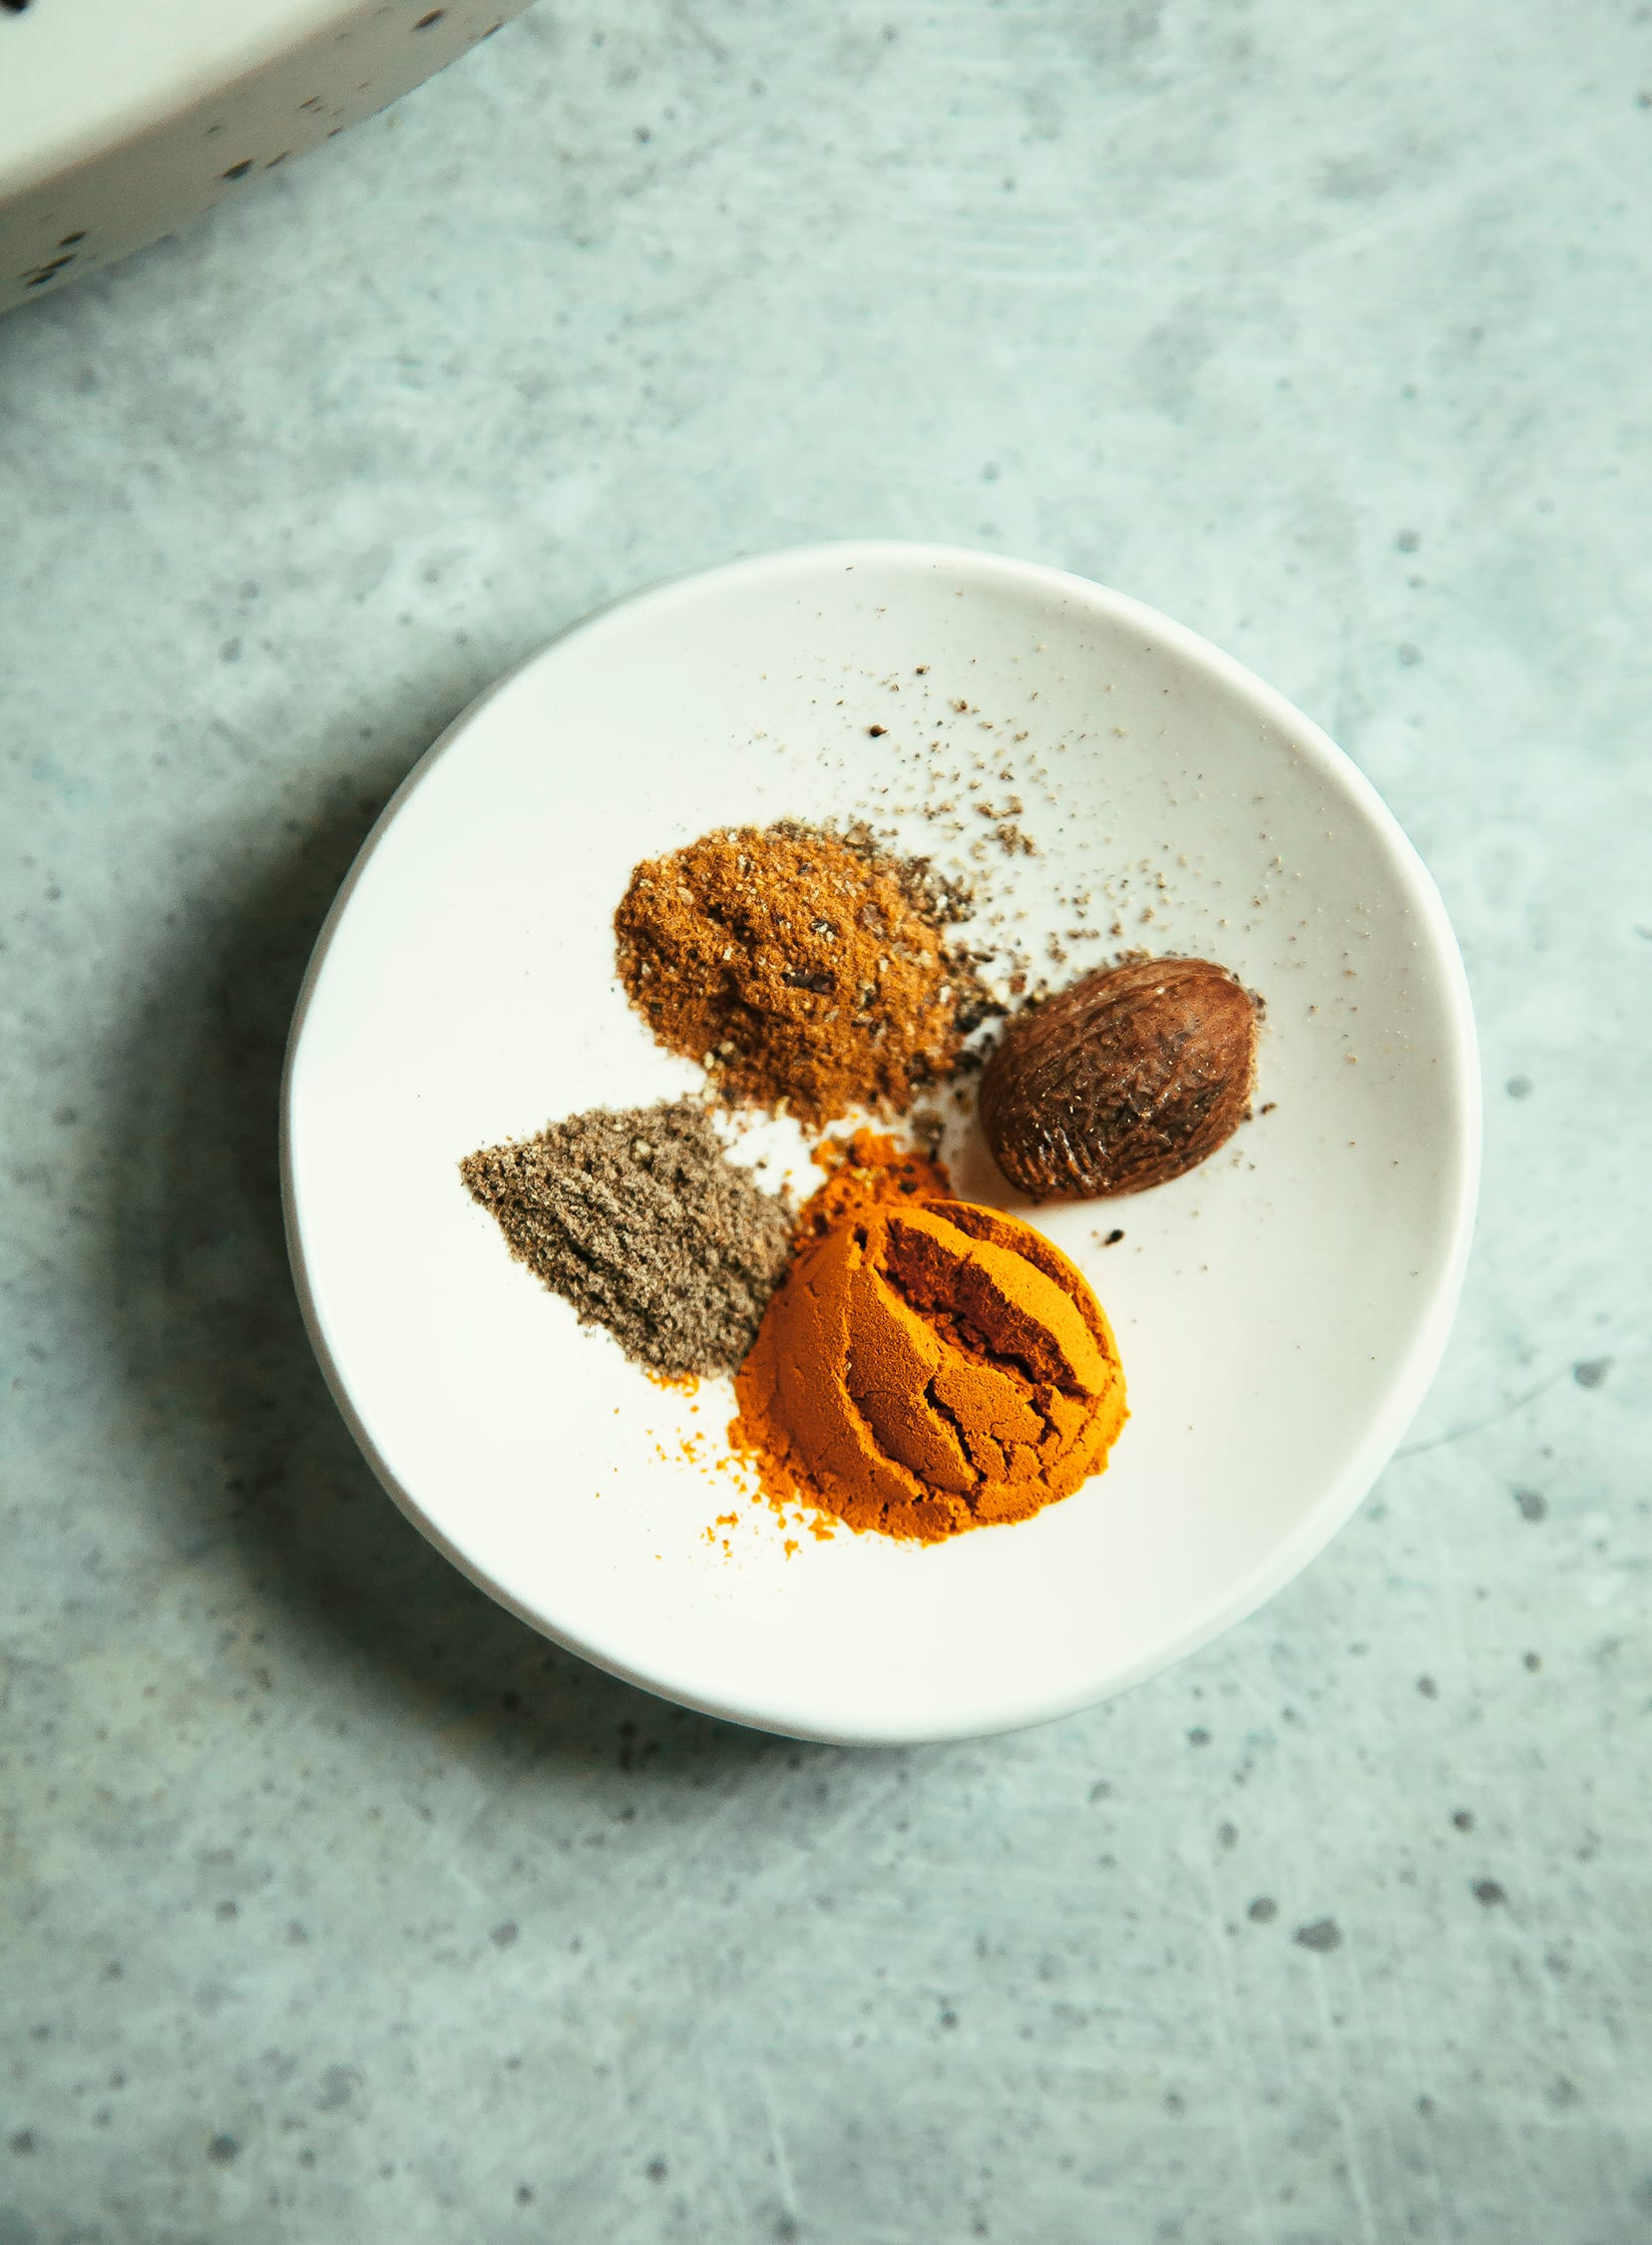 An overhead shot of spices in a small white bowl.